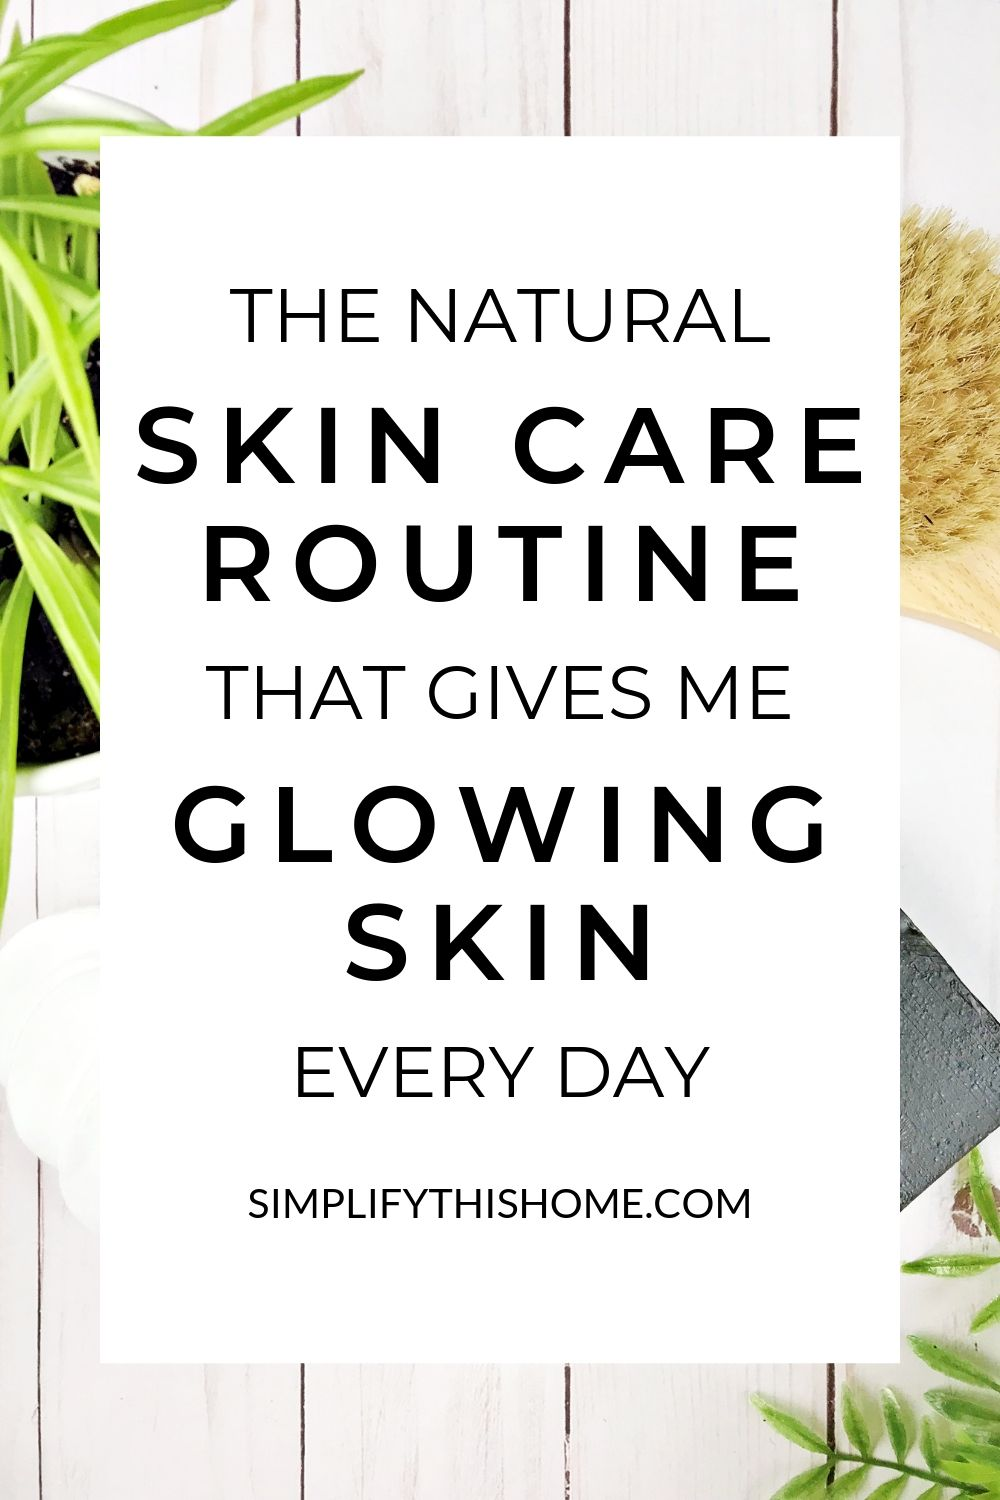 The natural skin care routine that gives me glowing skin every day #diyskincare